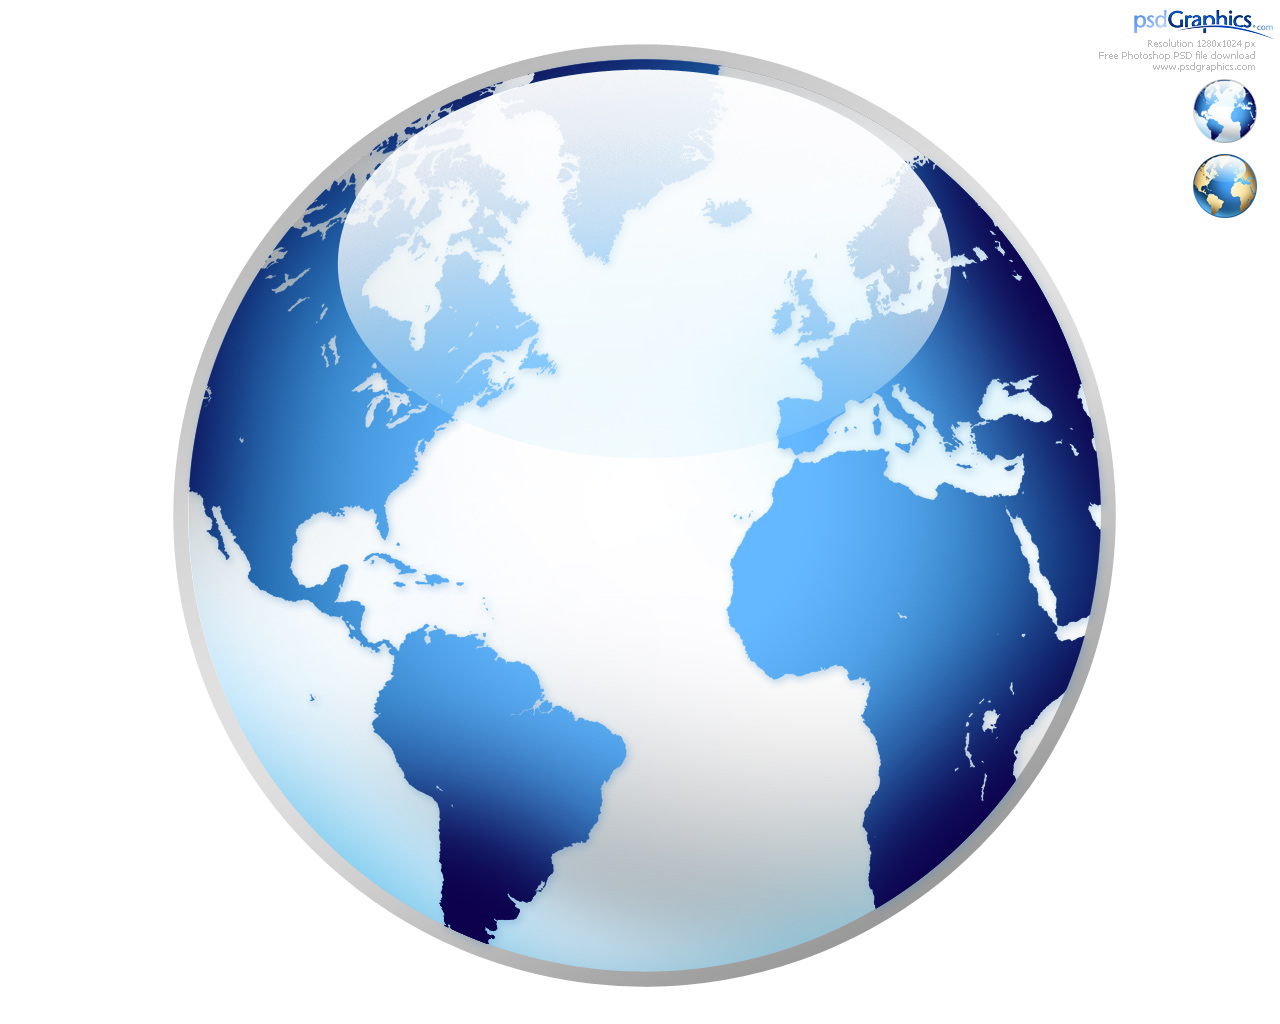 Photoshop world globe icon | PSDGraphics